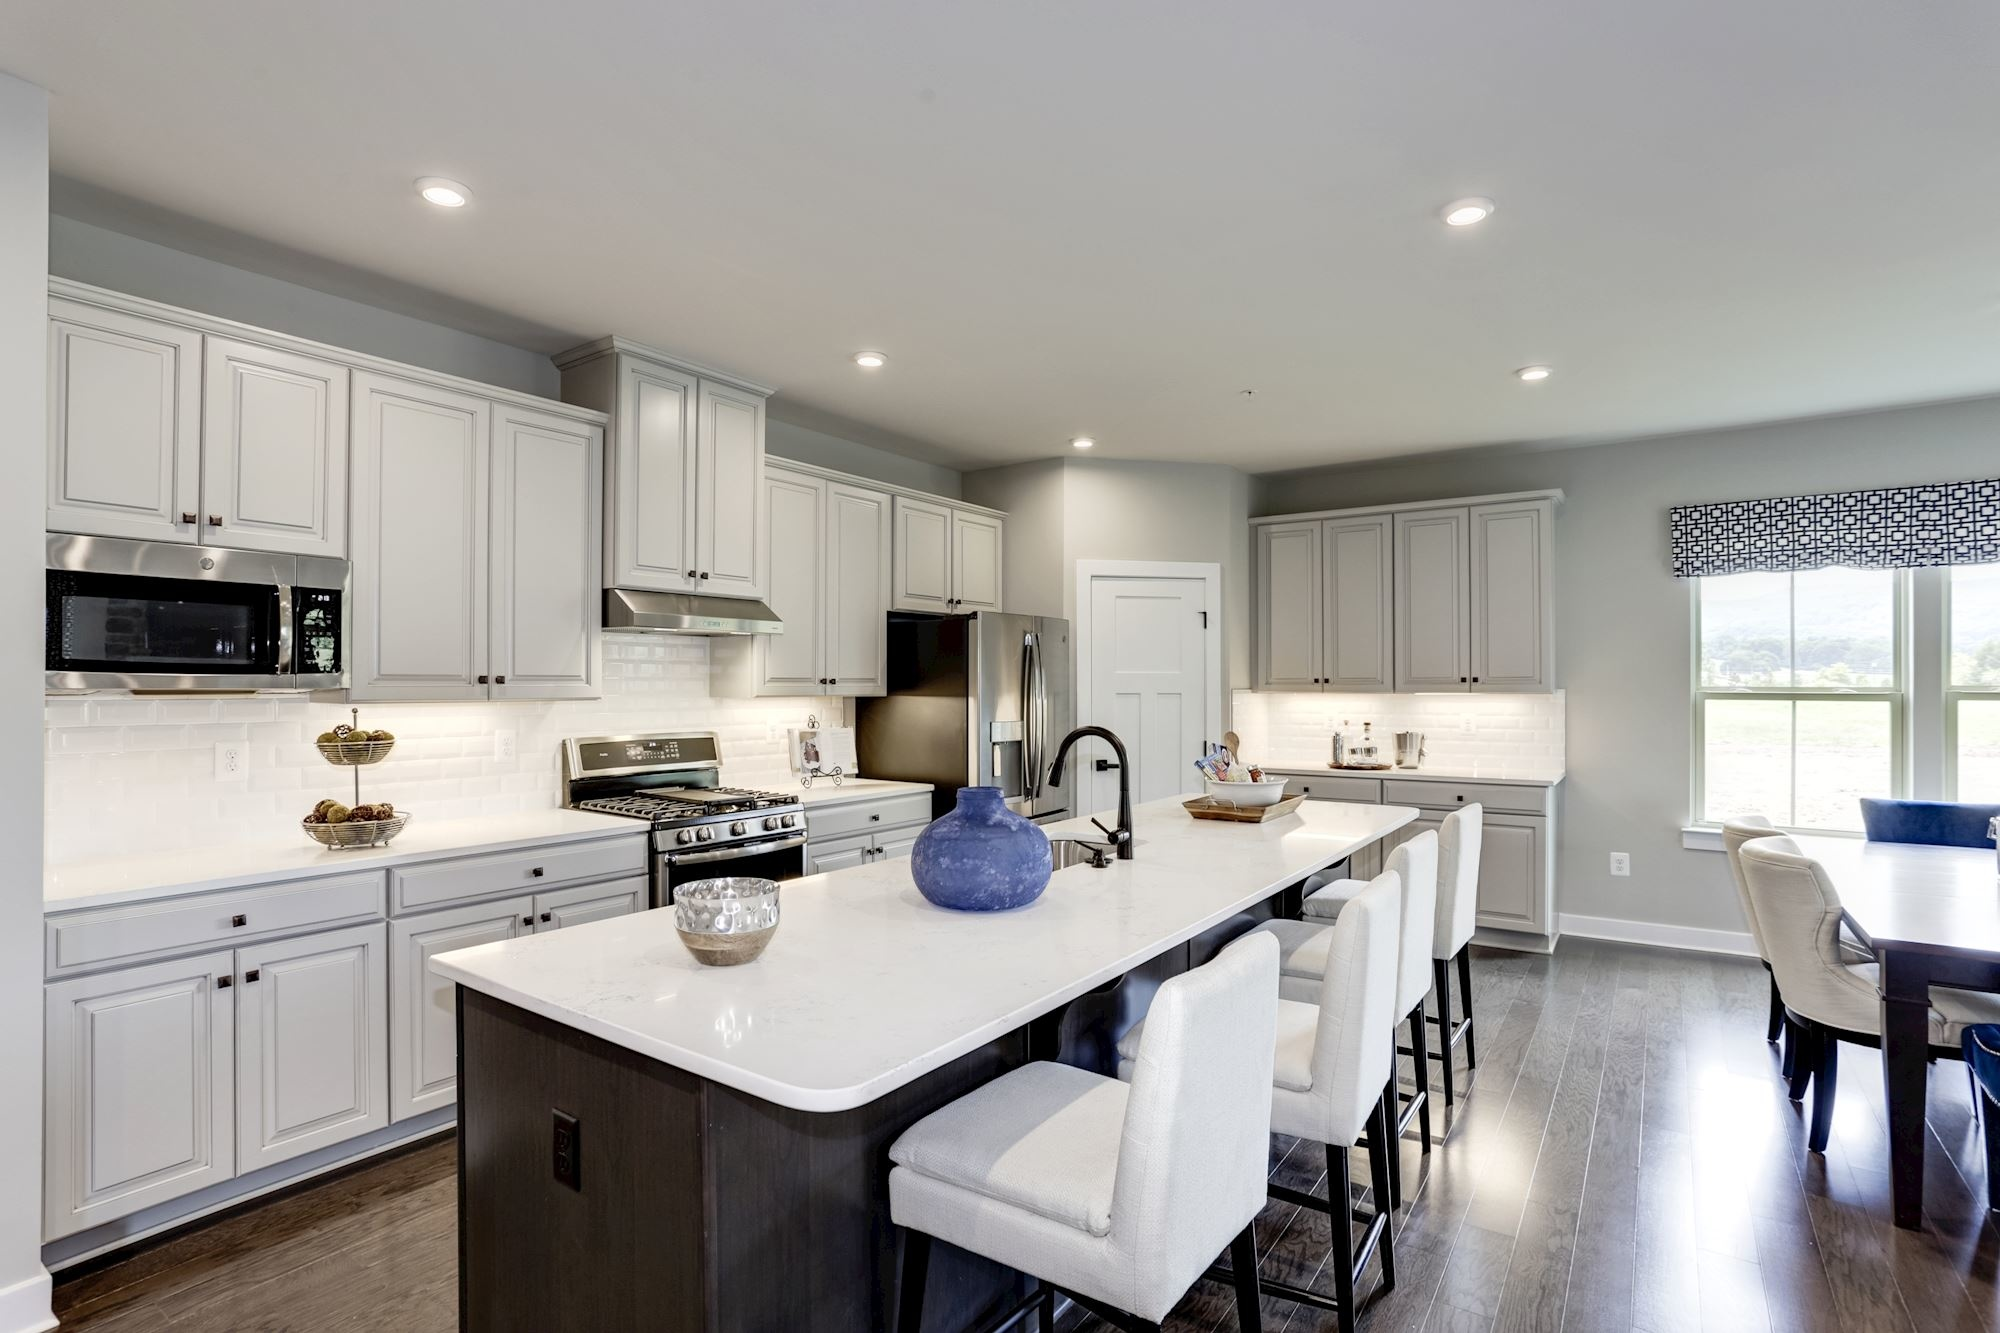 New Homes For Sale At Mccullers Walk In Raleigh Nc Within The Wake